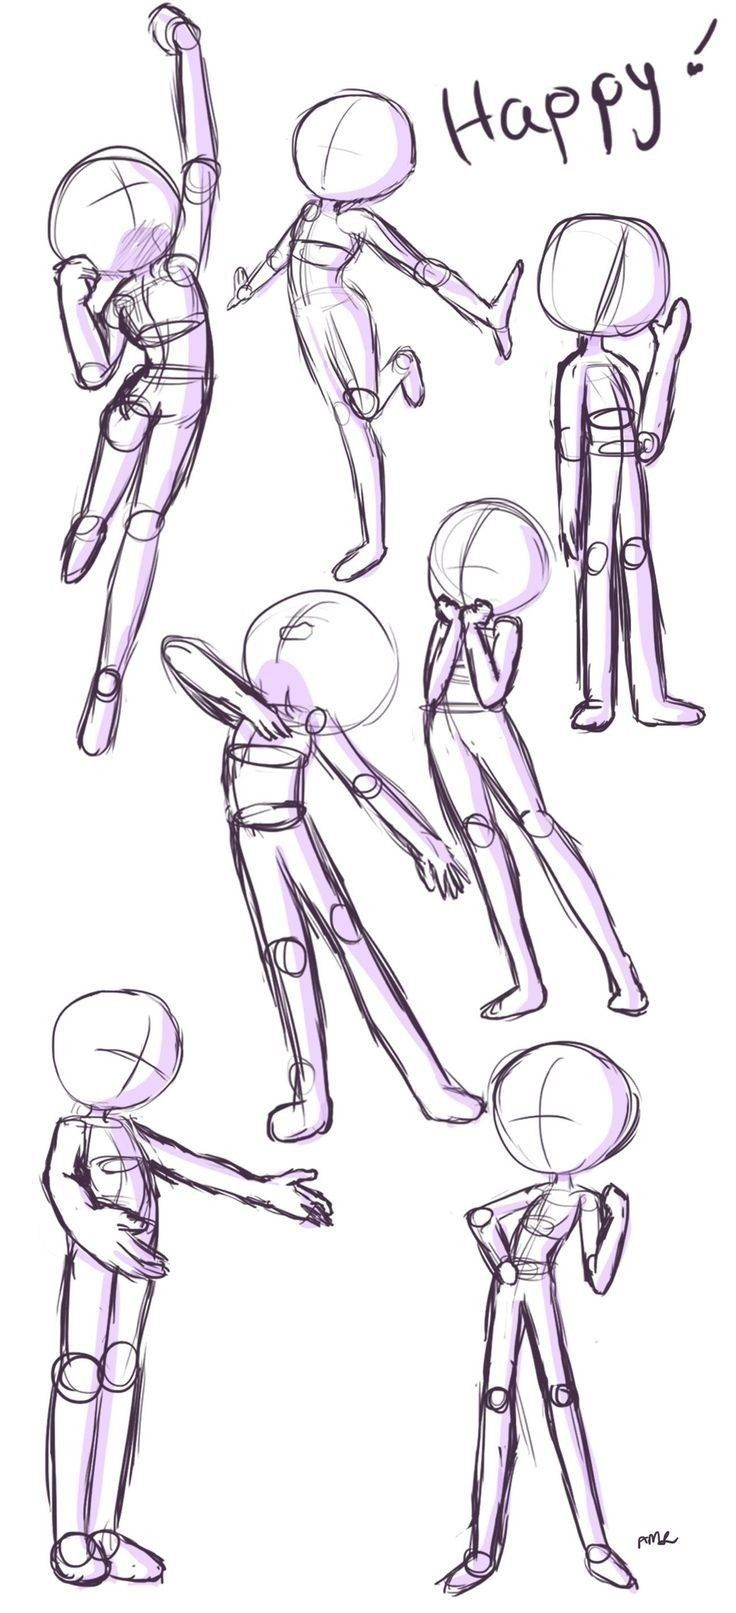 Pin By Raven Winter On Drawing Ideas In 2020 Art Reference Poses Cartoon Styles Drawing Techniques